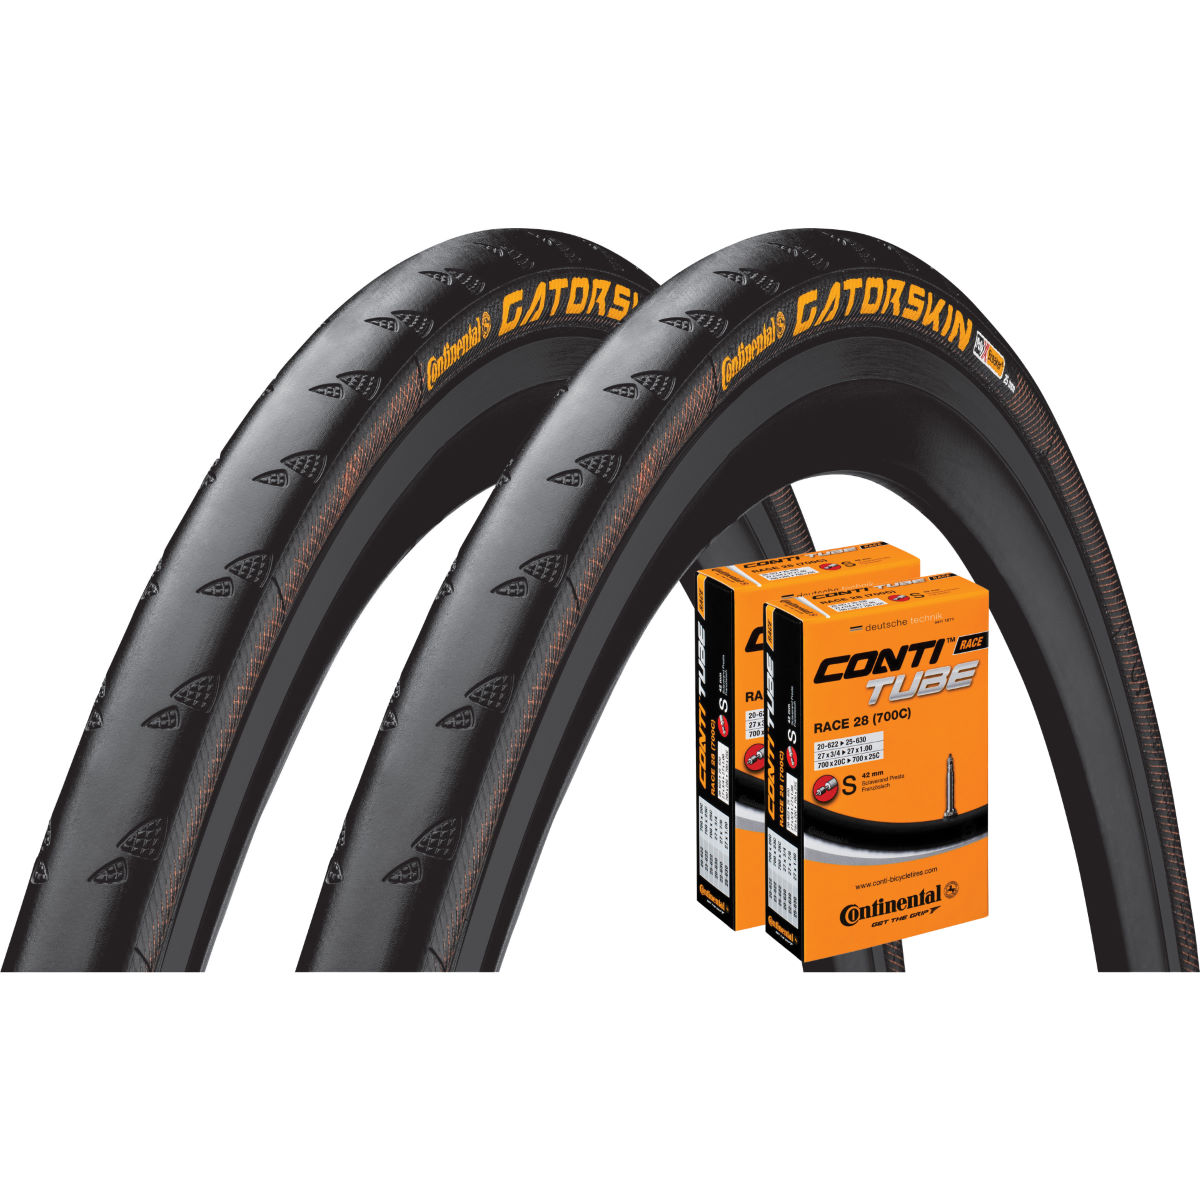 Continental Continental Gatorskin 23c Tyres + 2 Tubes   Tyres